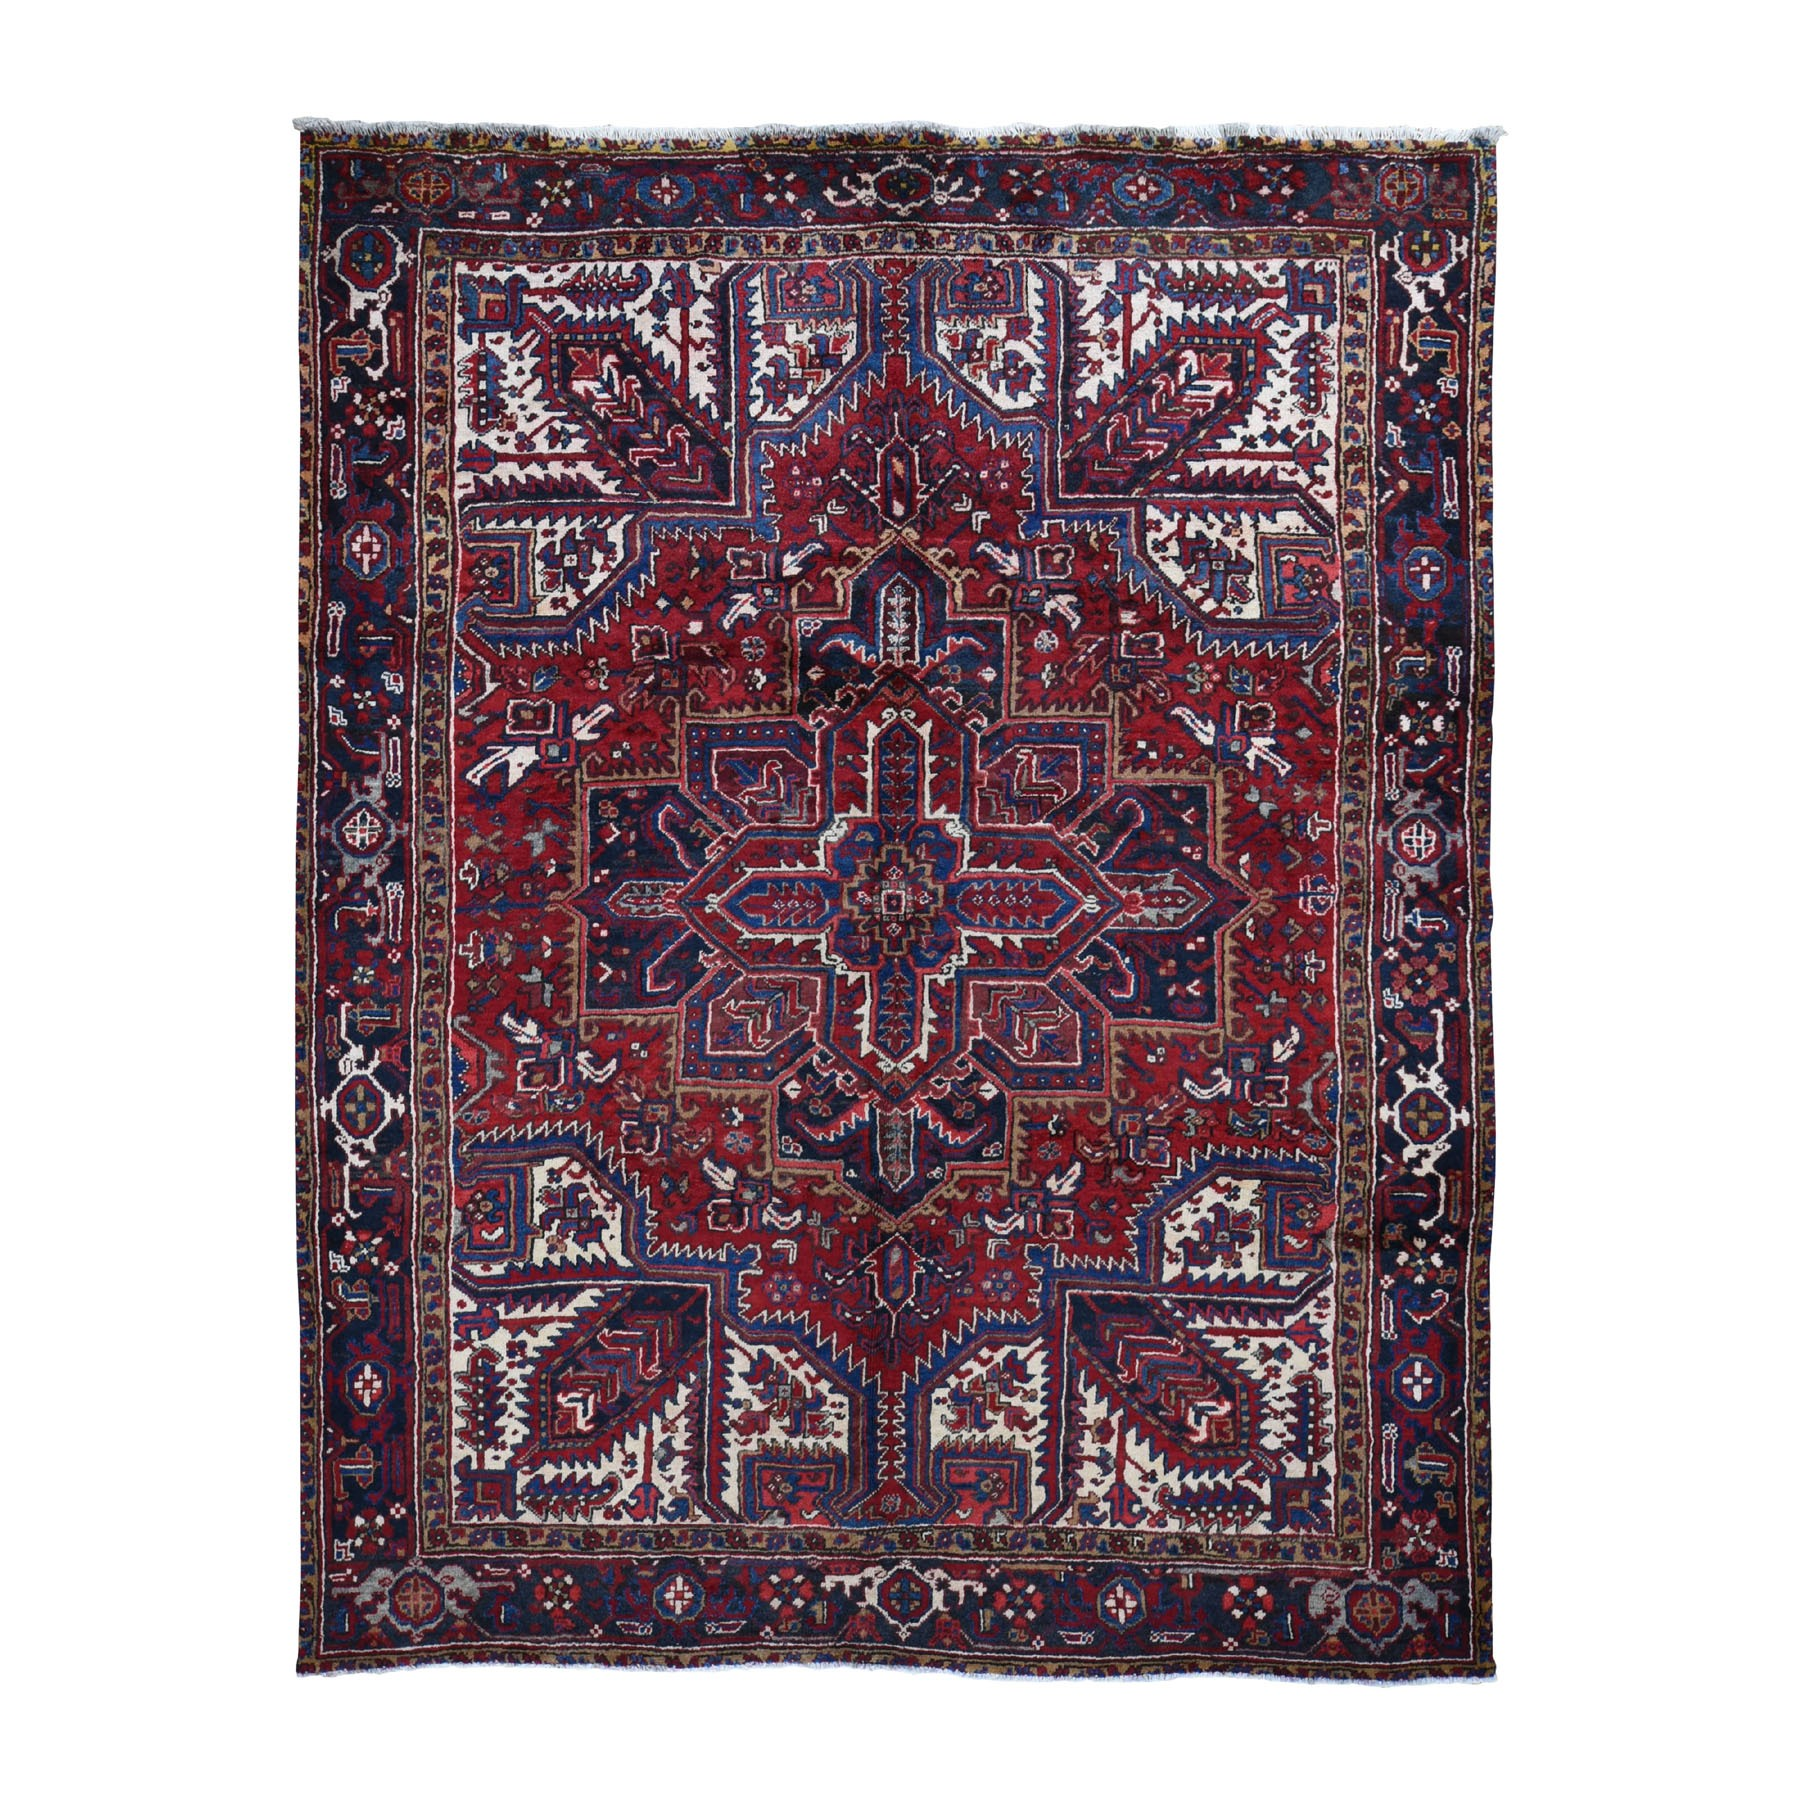 "7'3""x10'4"" Red Semi Antique Persian Heriz Geometric Design Thick and Plush Hand Knotted Oriental Rug"